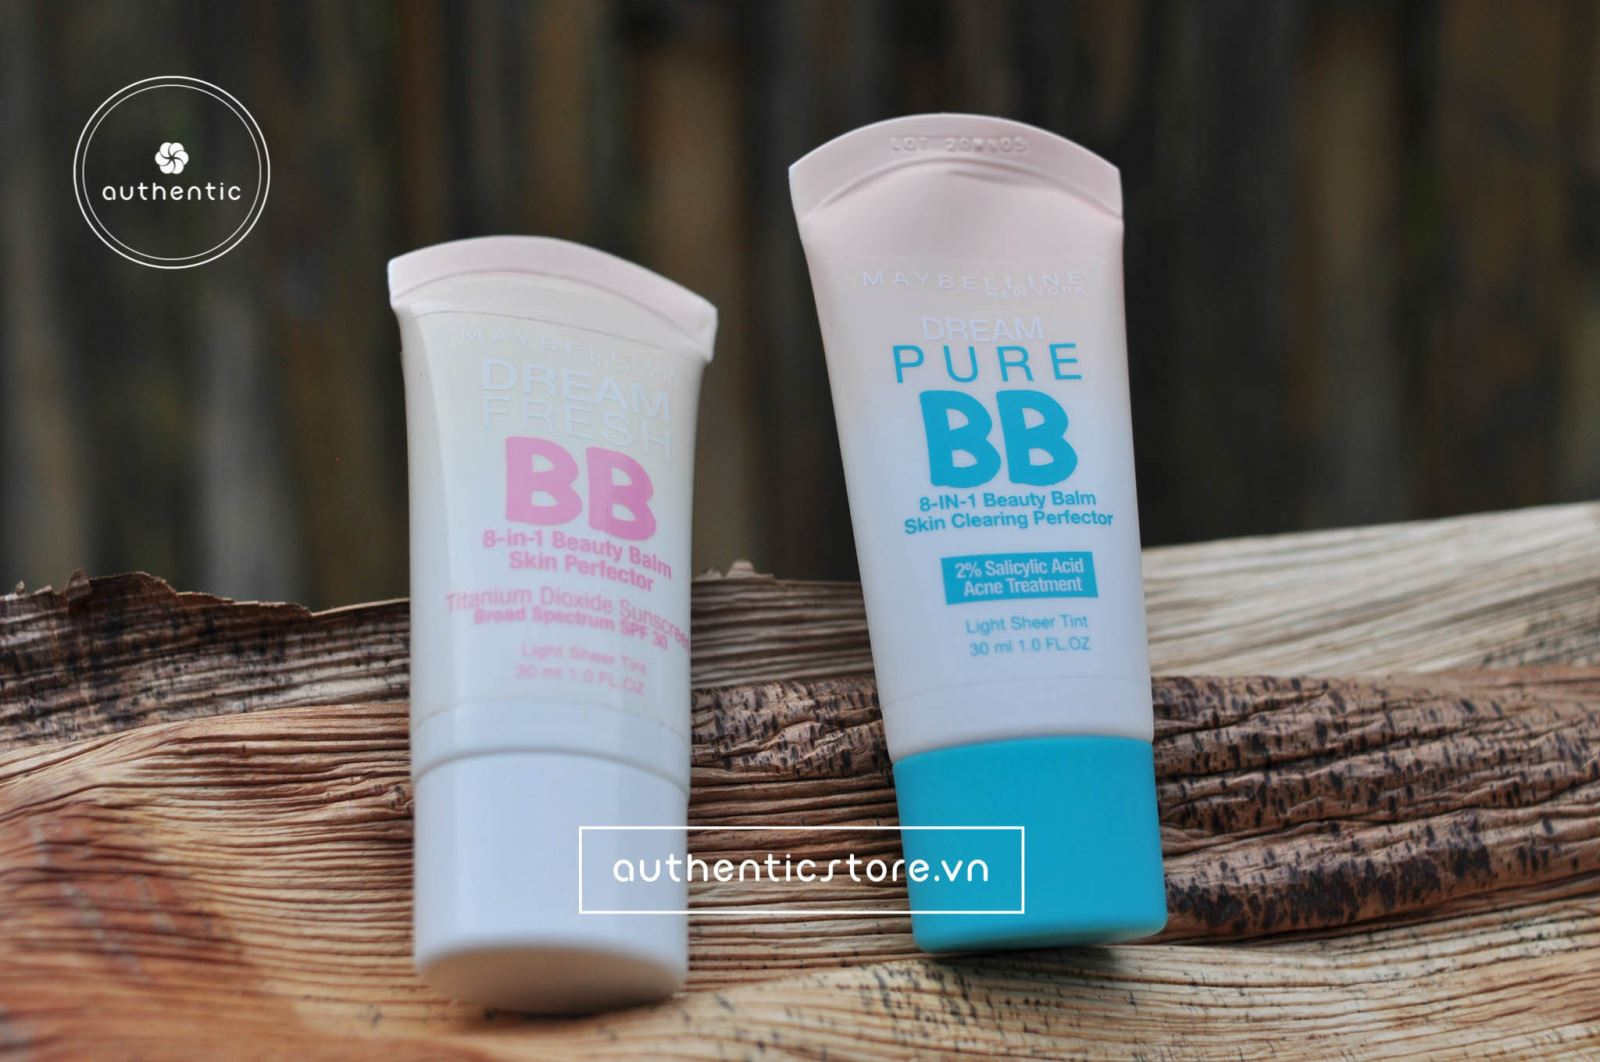 Kem BB Maybelline Dream Pure 8 in 1 Beauty Balm